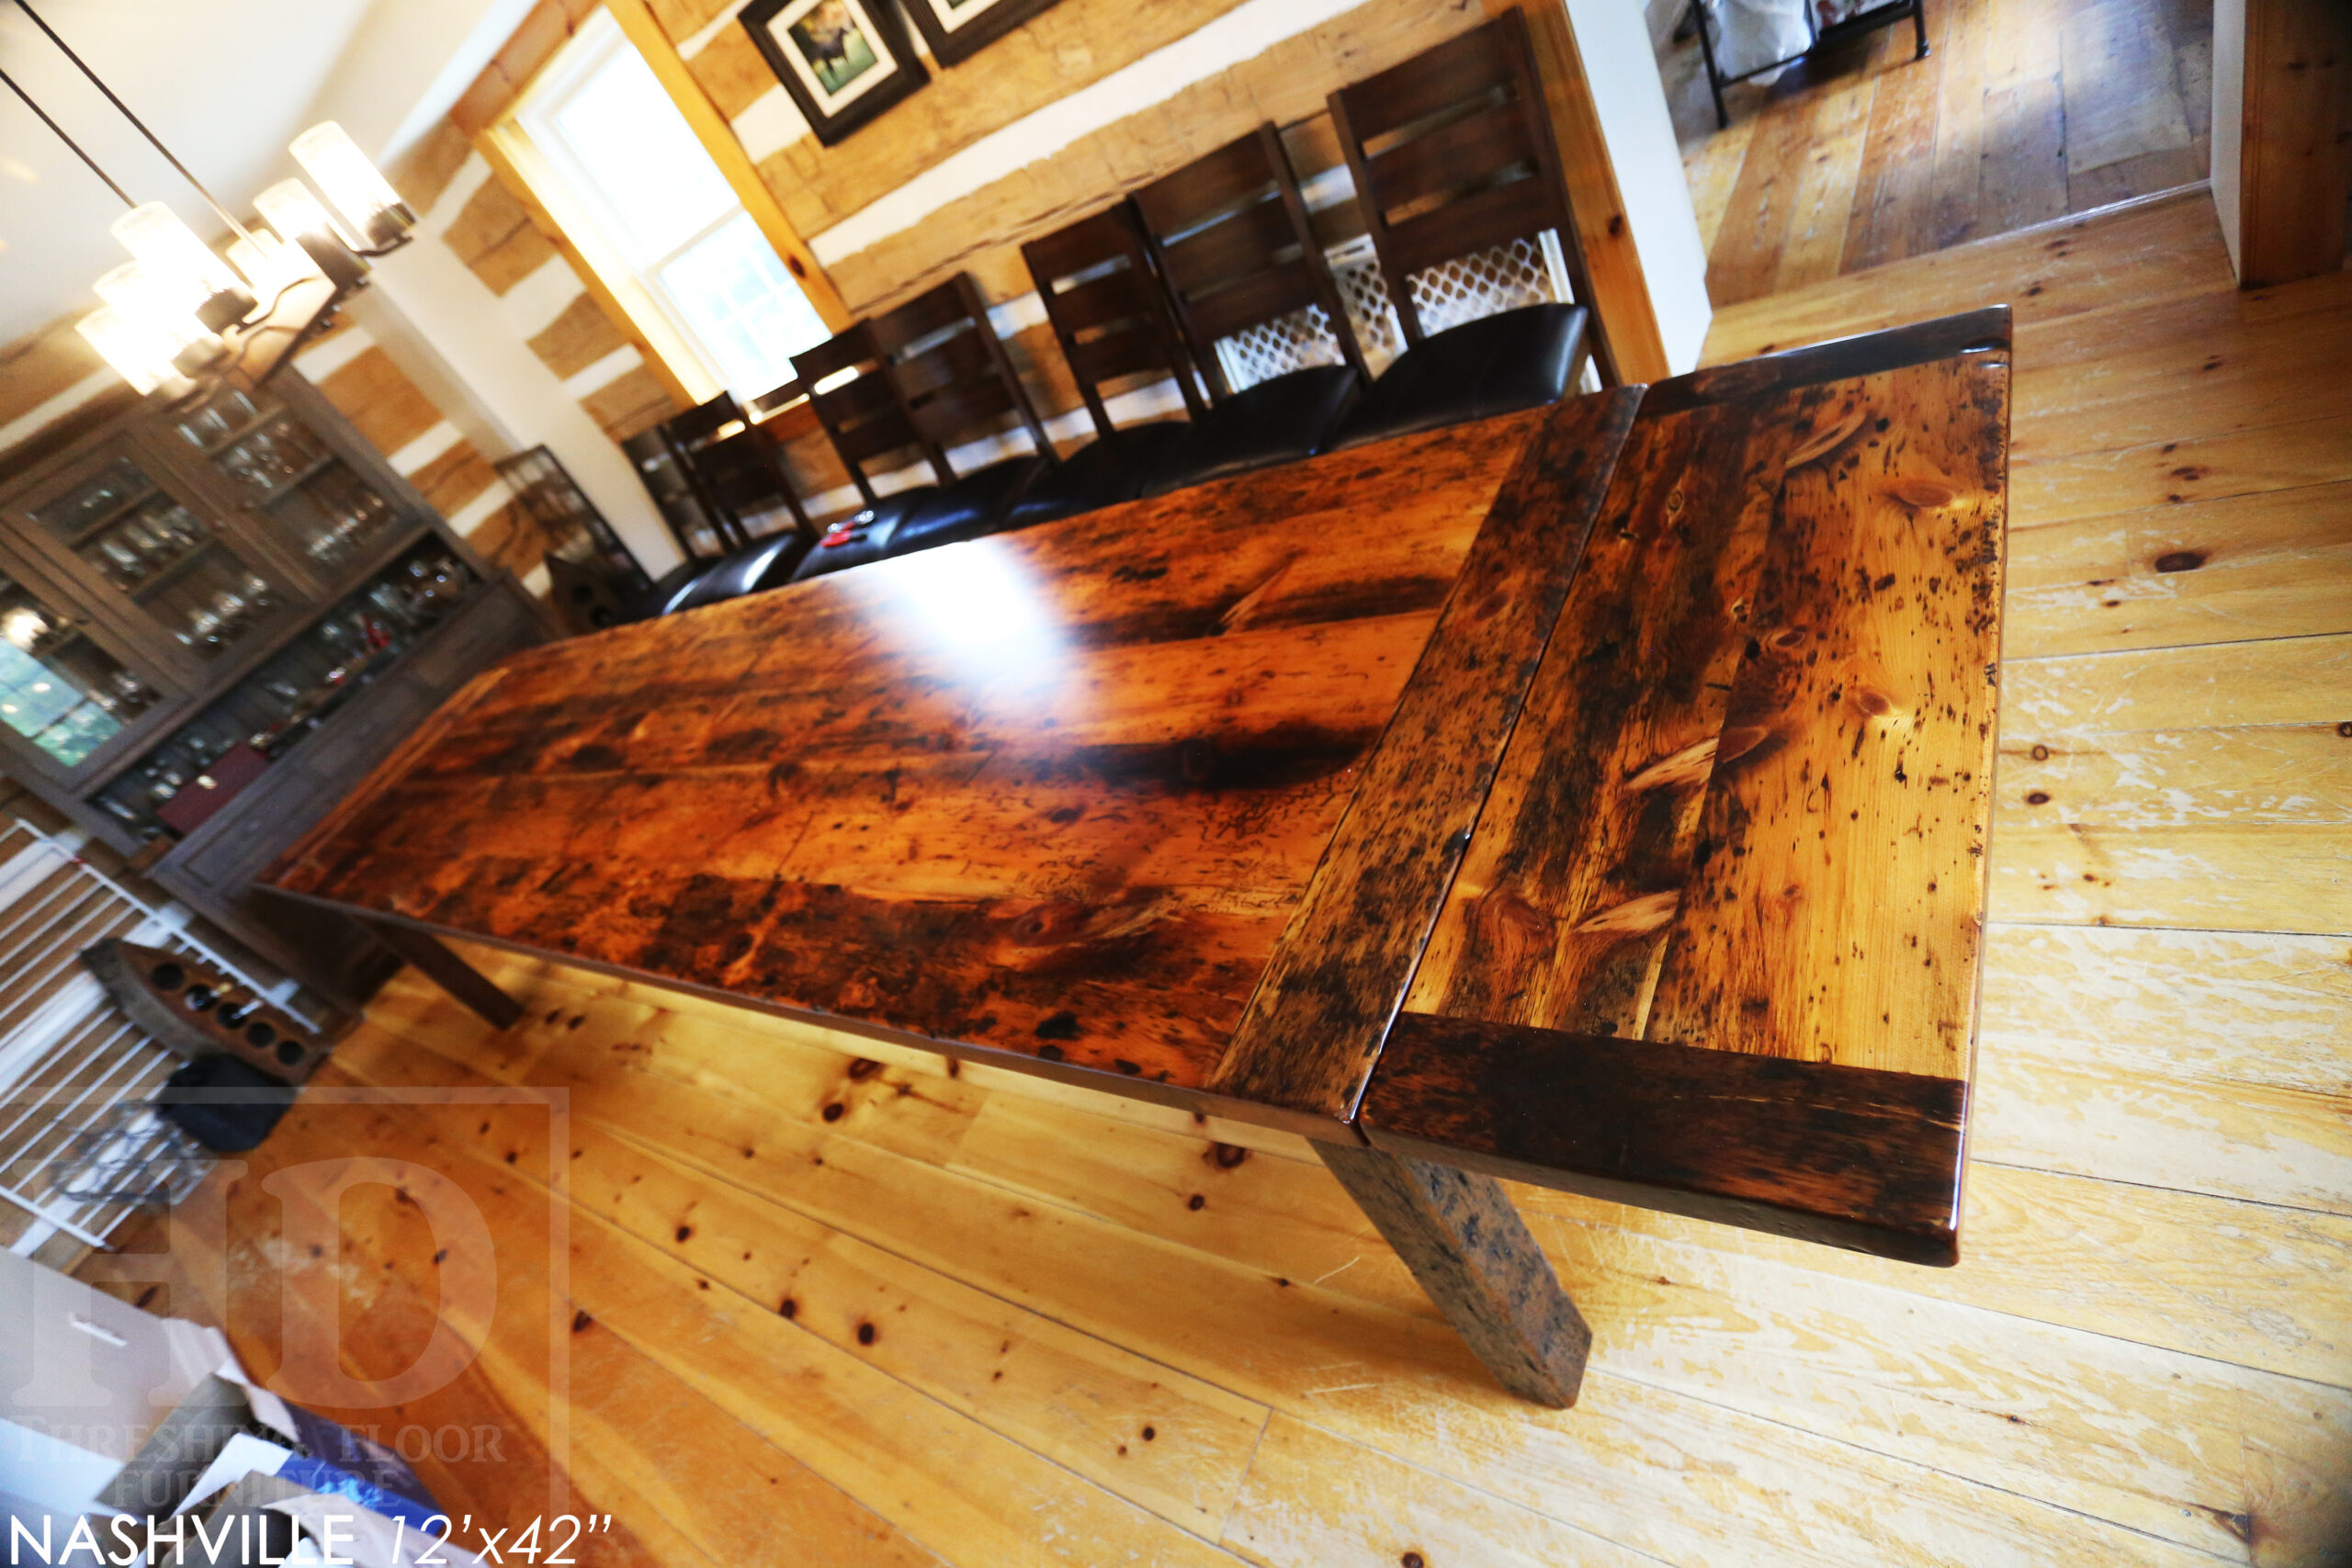 """12' Ontario Barnwood Harvest Table we made for a Bolton, Ontario home - 42"""" wide - Original edges & distressing maintained - Old growth Pine Threshing Floor 2"""" Top - Straight 4""""x4"""" Windbrace Beam Legs - Two 15"""" Leaf Extensions [making total length 174"""" when extended] - Premium epoxy + satin polyurethane finish - www.table.ca"""